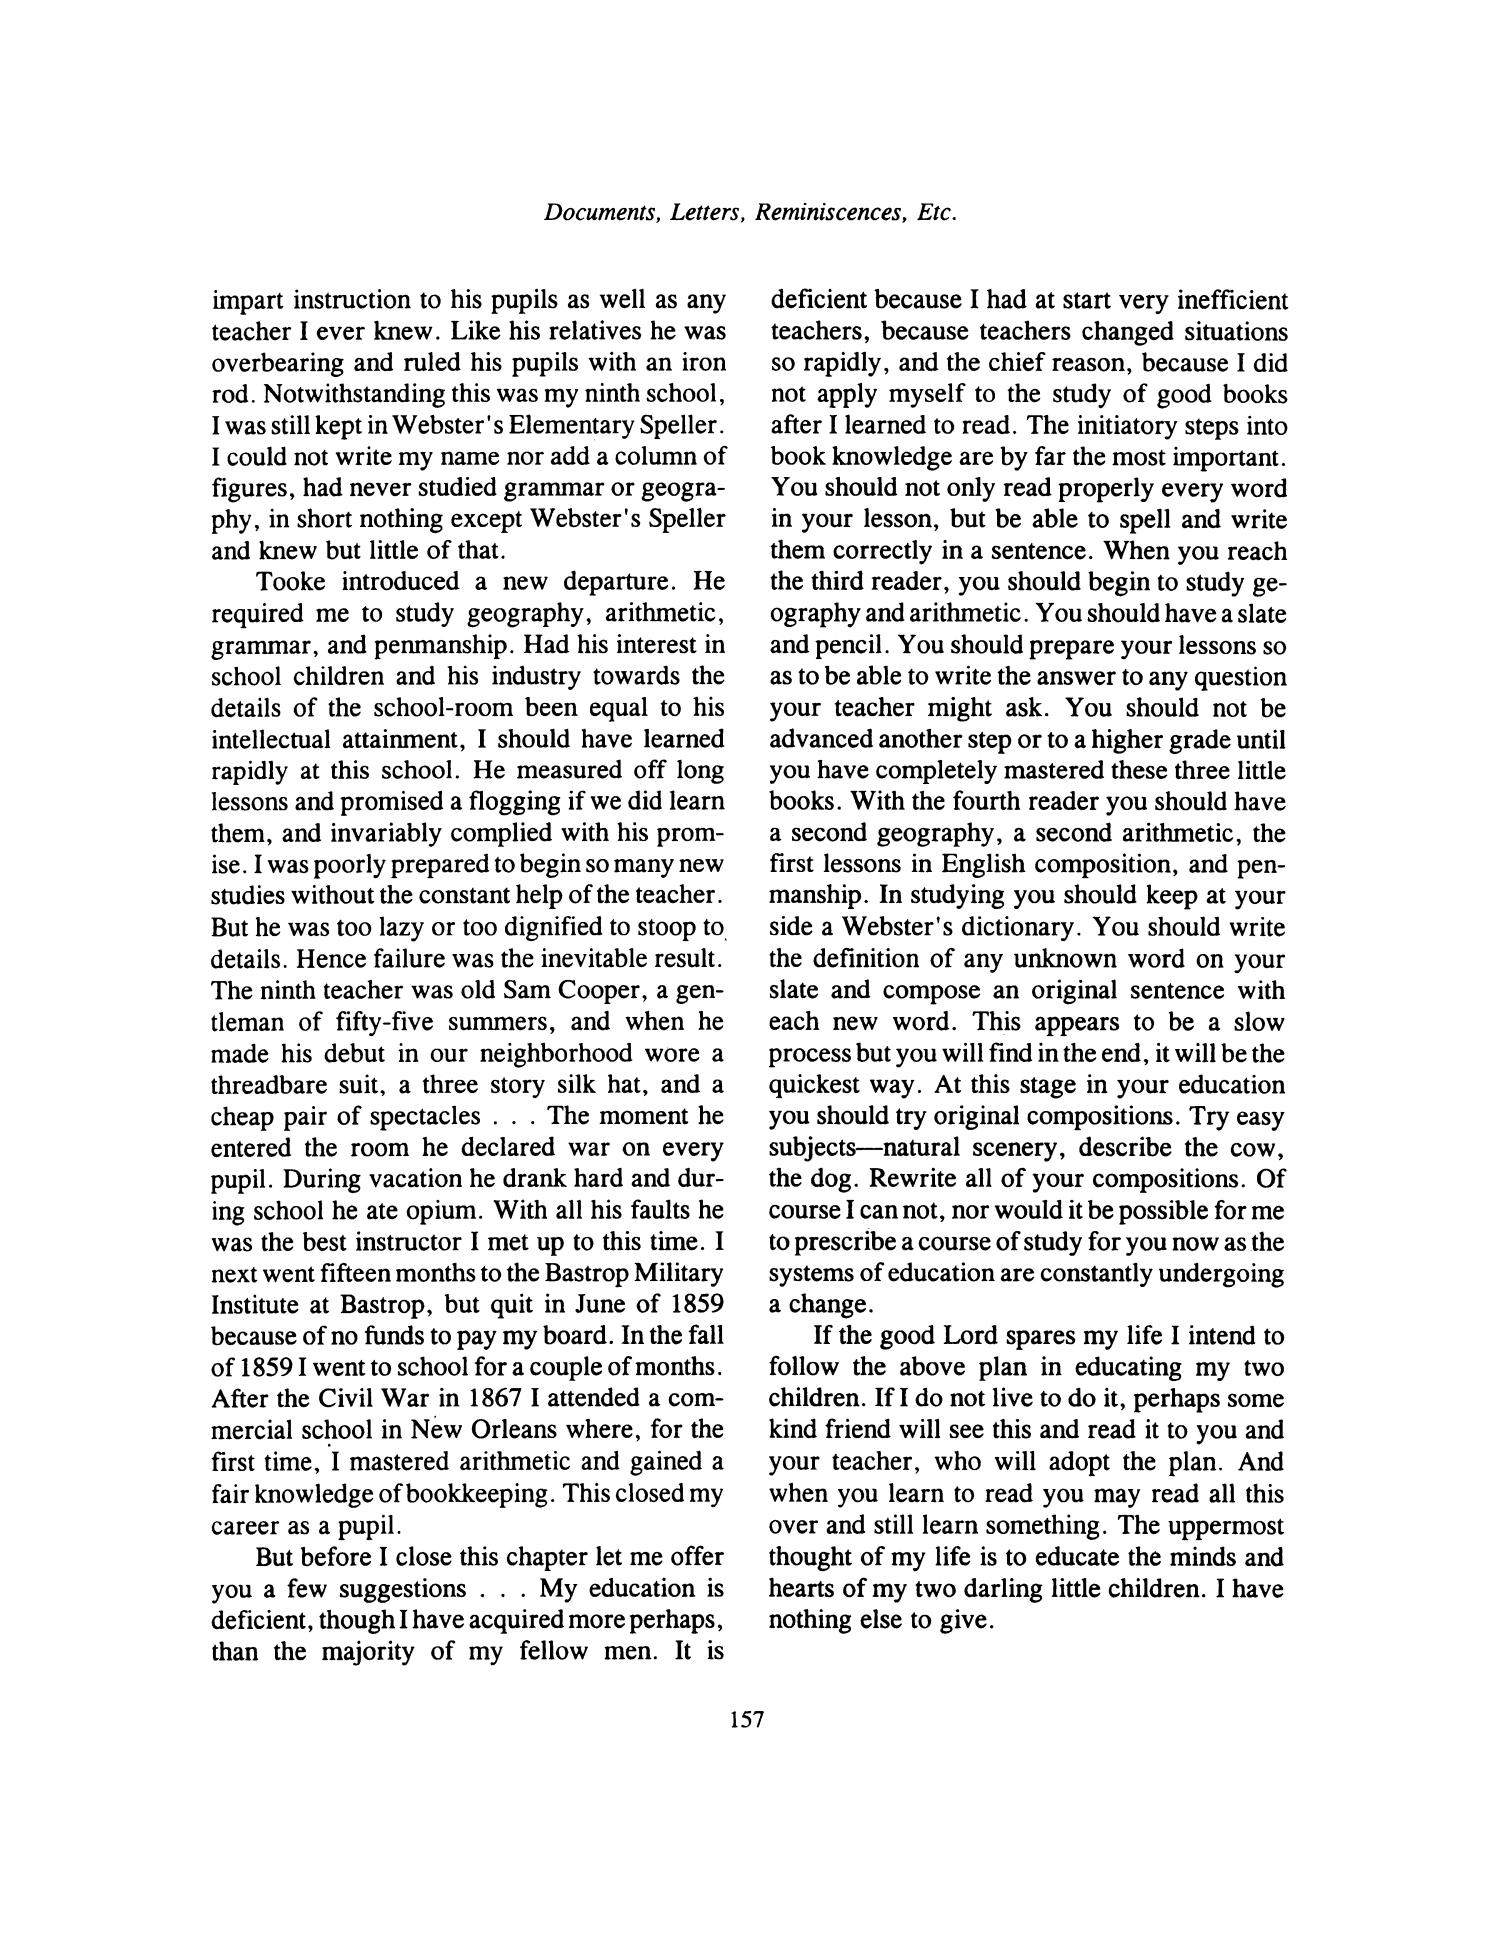 Nesbitt Memorial Library Journal, Volume 6, Number 3, September, 1996                                                                                                      157